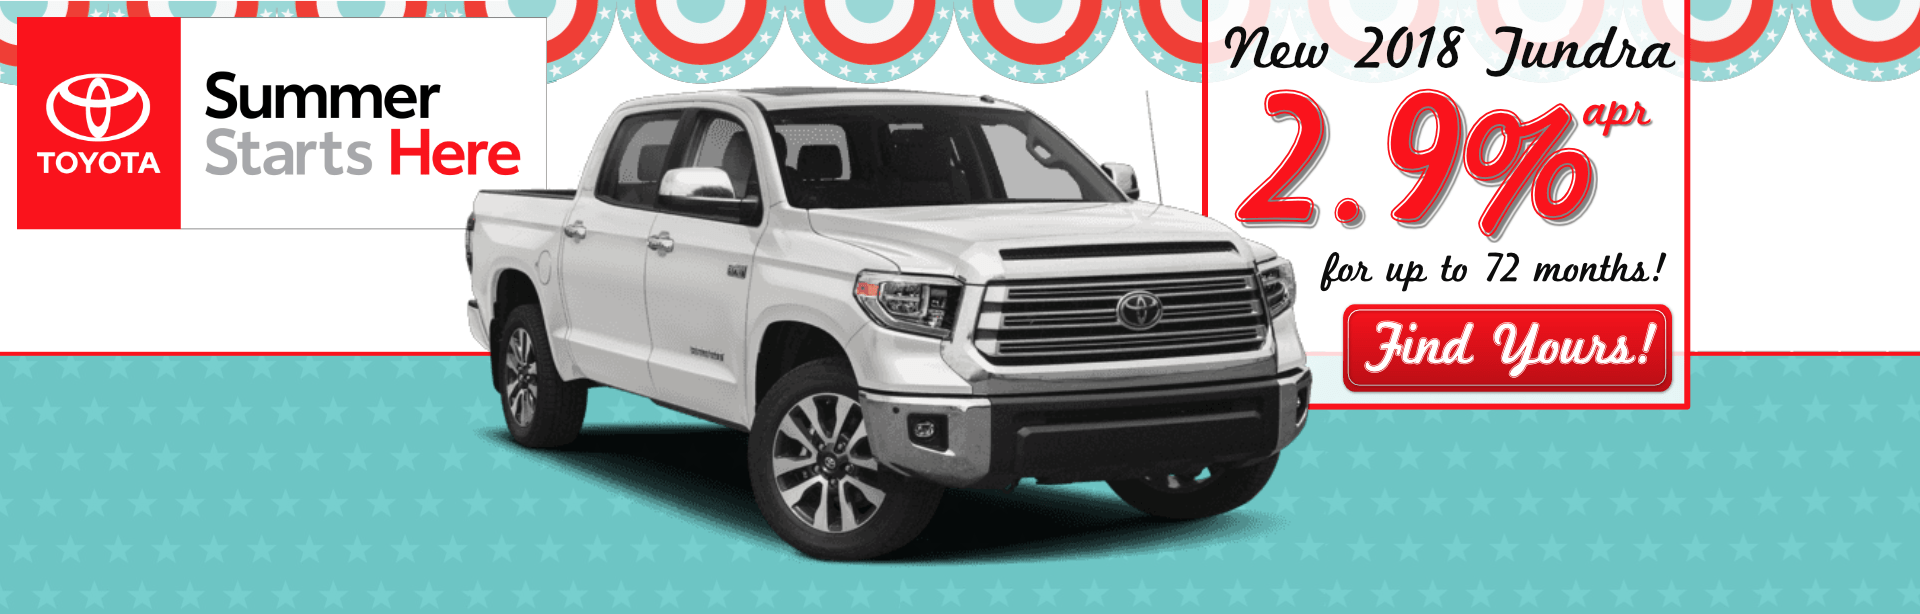 2018 Tundra Offer